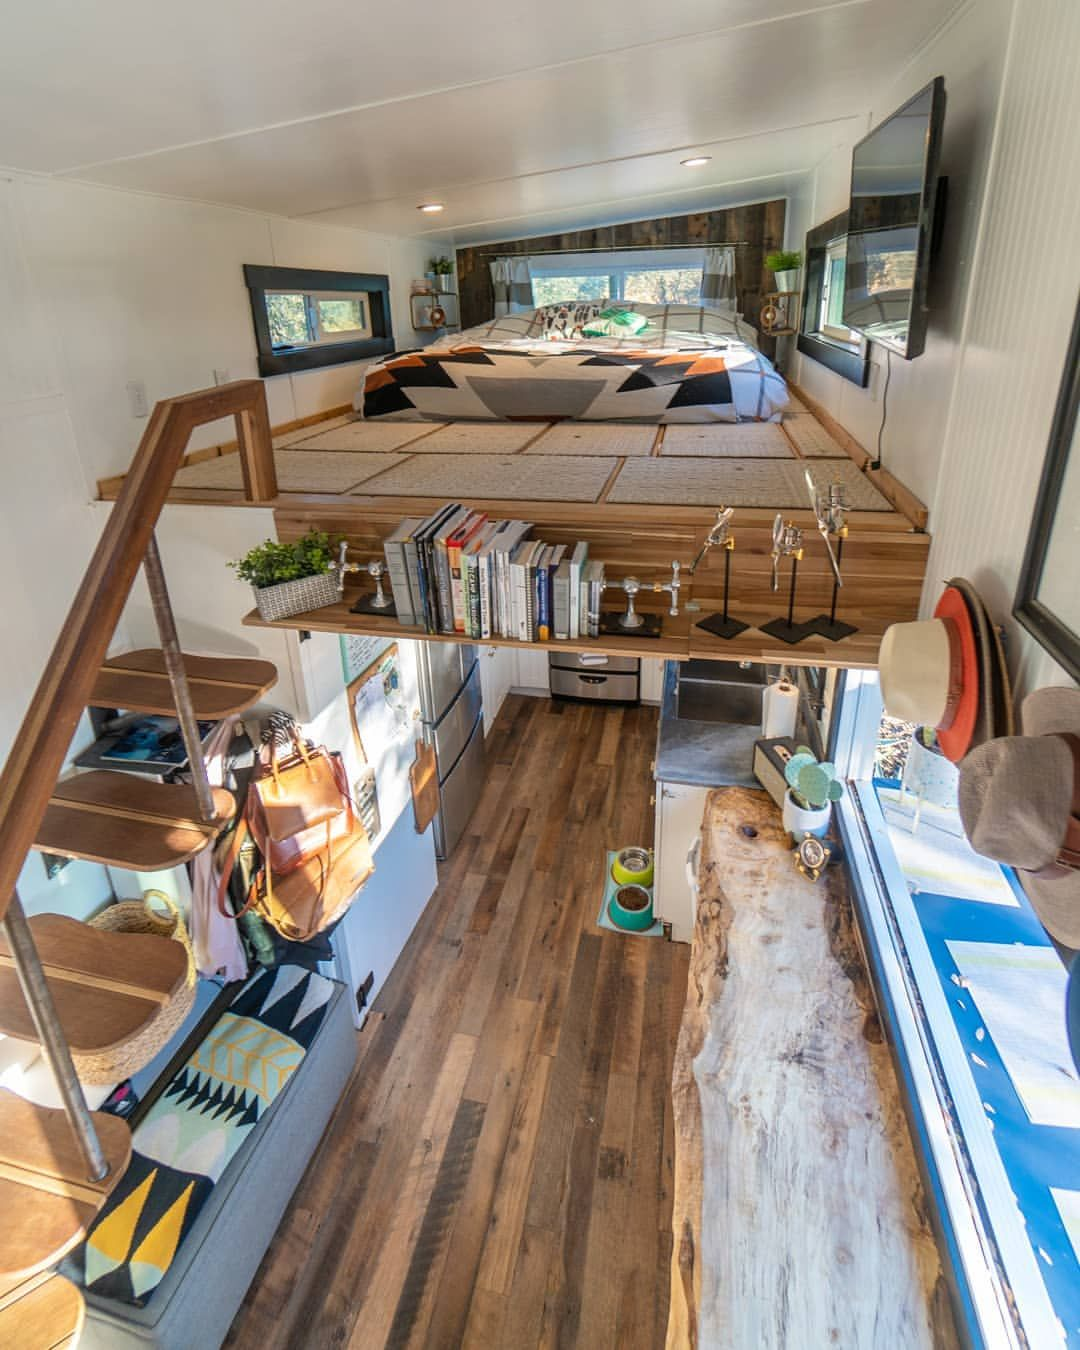 Tiny House Lofts What Height Do We Recommend For Building Your Tiny House Lofts Tiny House Loft Tiny House Design Tiny House Interior